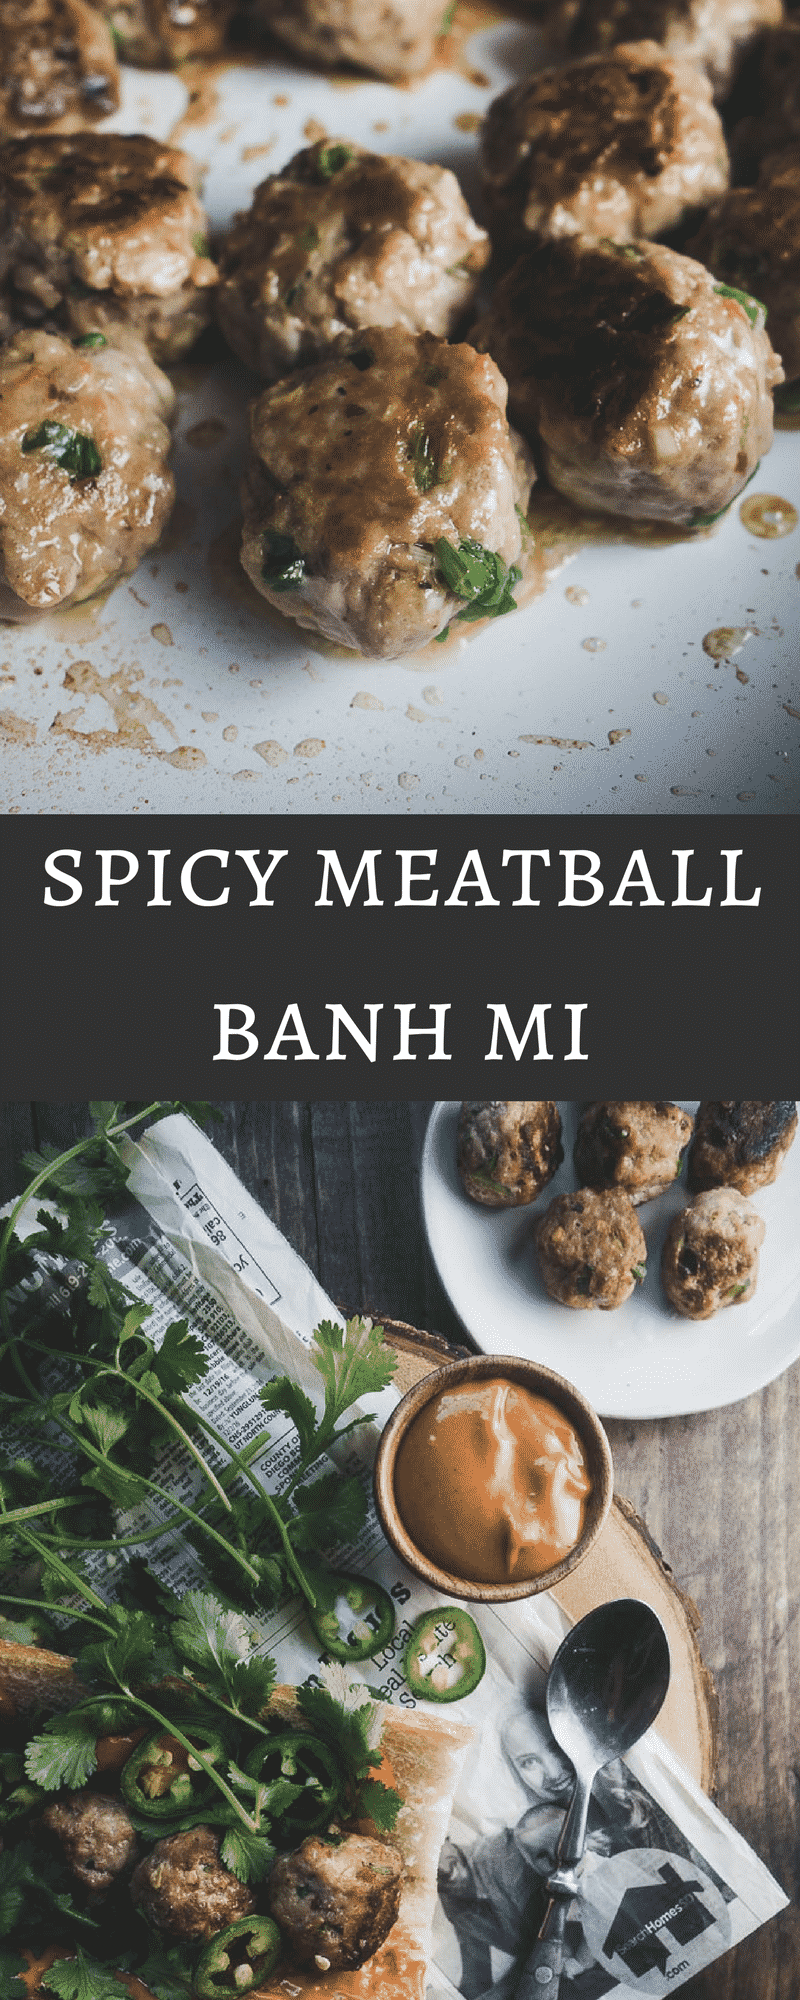 This spicy meatball banh mi takes less than 20 minutes to make and is served on a fresh chewy french baguette with sriracha hoisin mayonnaise...I love this sandwich! vietnamese pork meatballs | banh mi | low carb banh mi meatballs | paleo meatballs | meatball banh mi | spicy hoisin mayonnaise | sriracha mayonnaise | vietnamese meatballs | vietnamese sandwich | banh mi meatballs | easy banh mi recipe